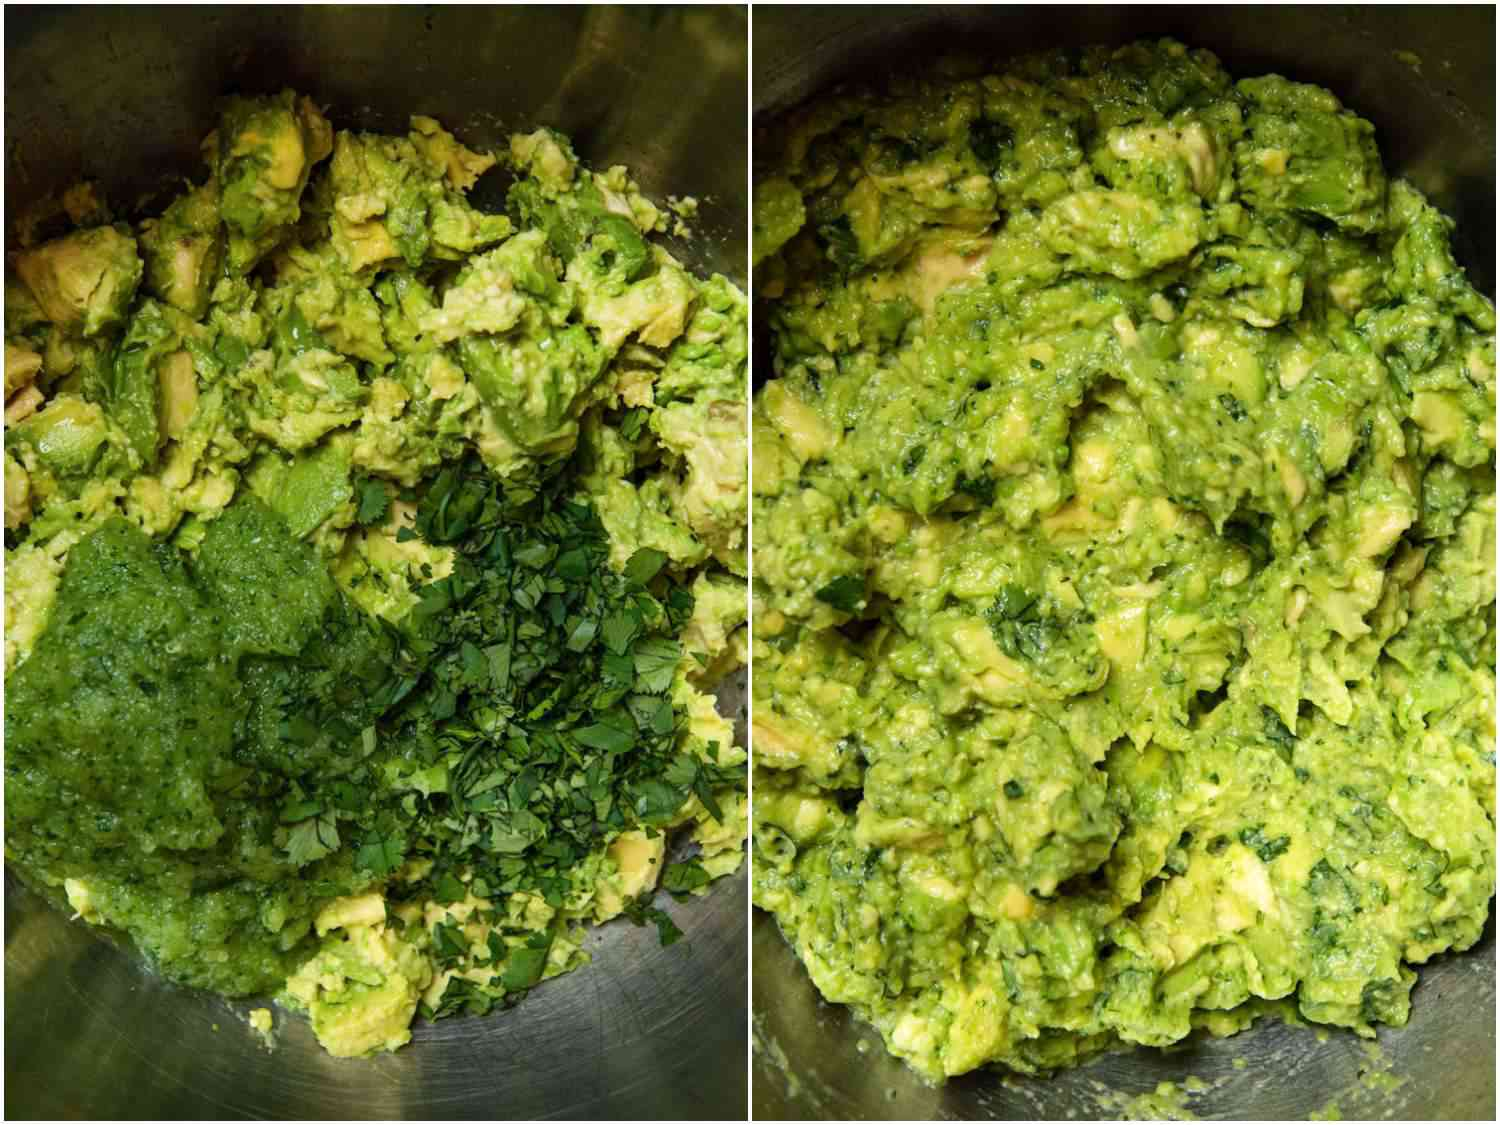 Split Side by side images of rough mashed avocado with chopped cilantro and mixed guacamole